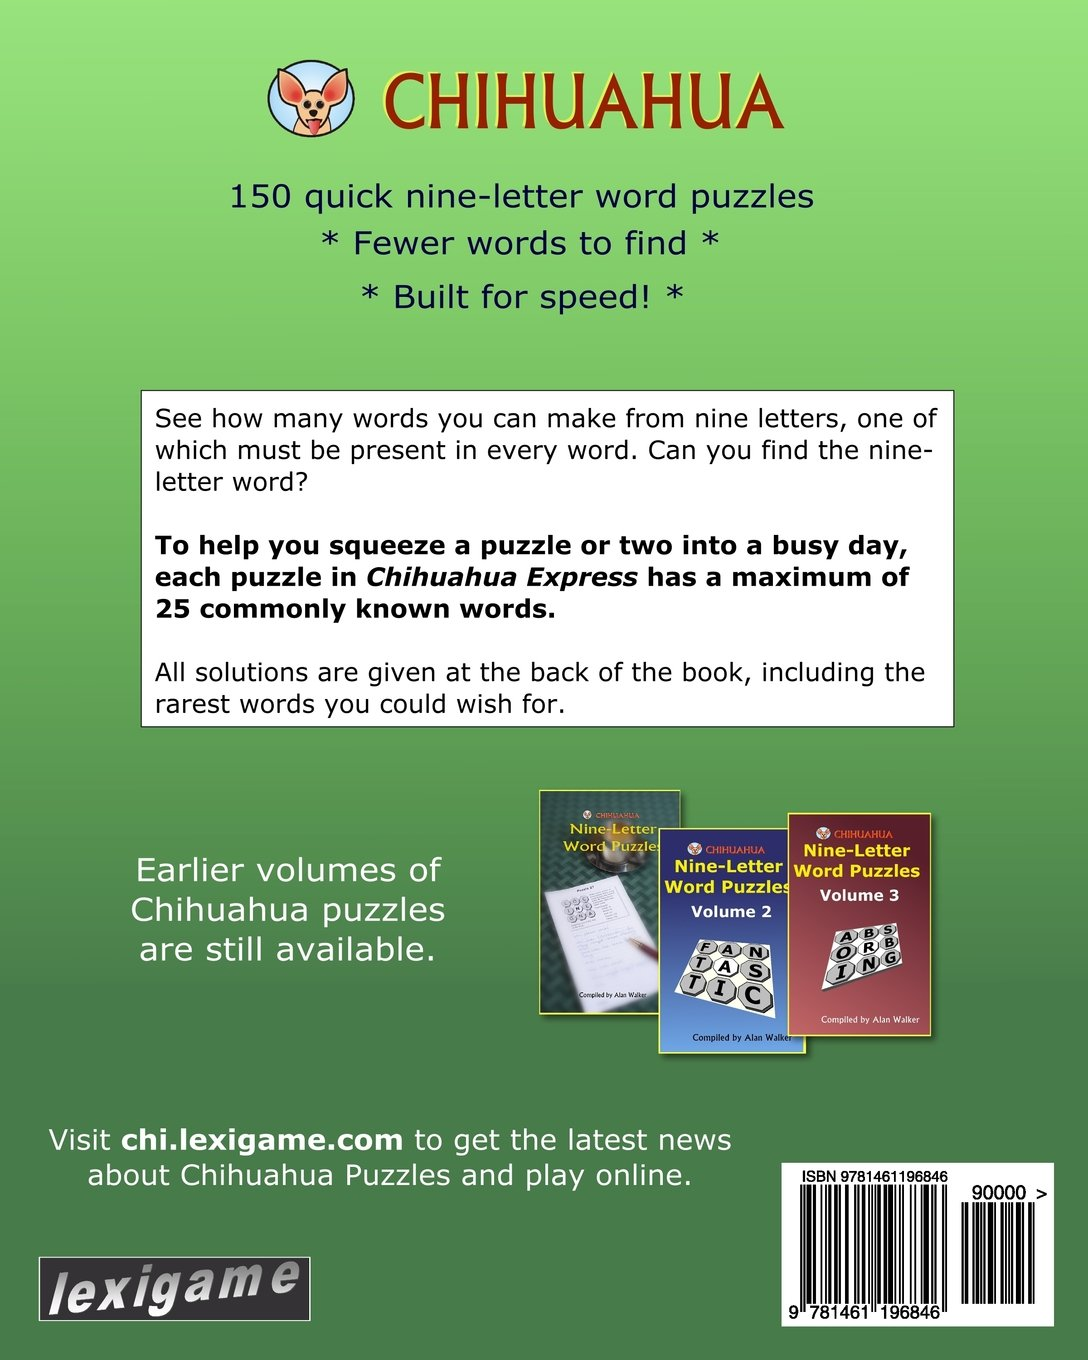 Chihuahua Express 150 Quick Nine Letter Puzzles Alan Walker